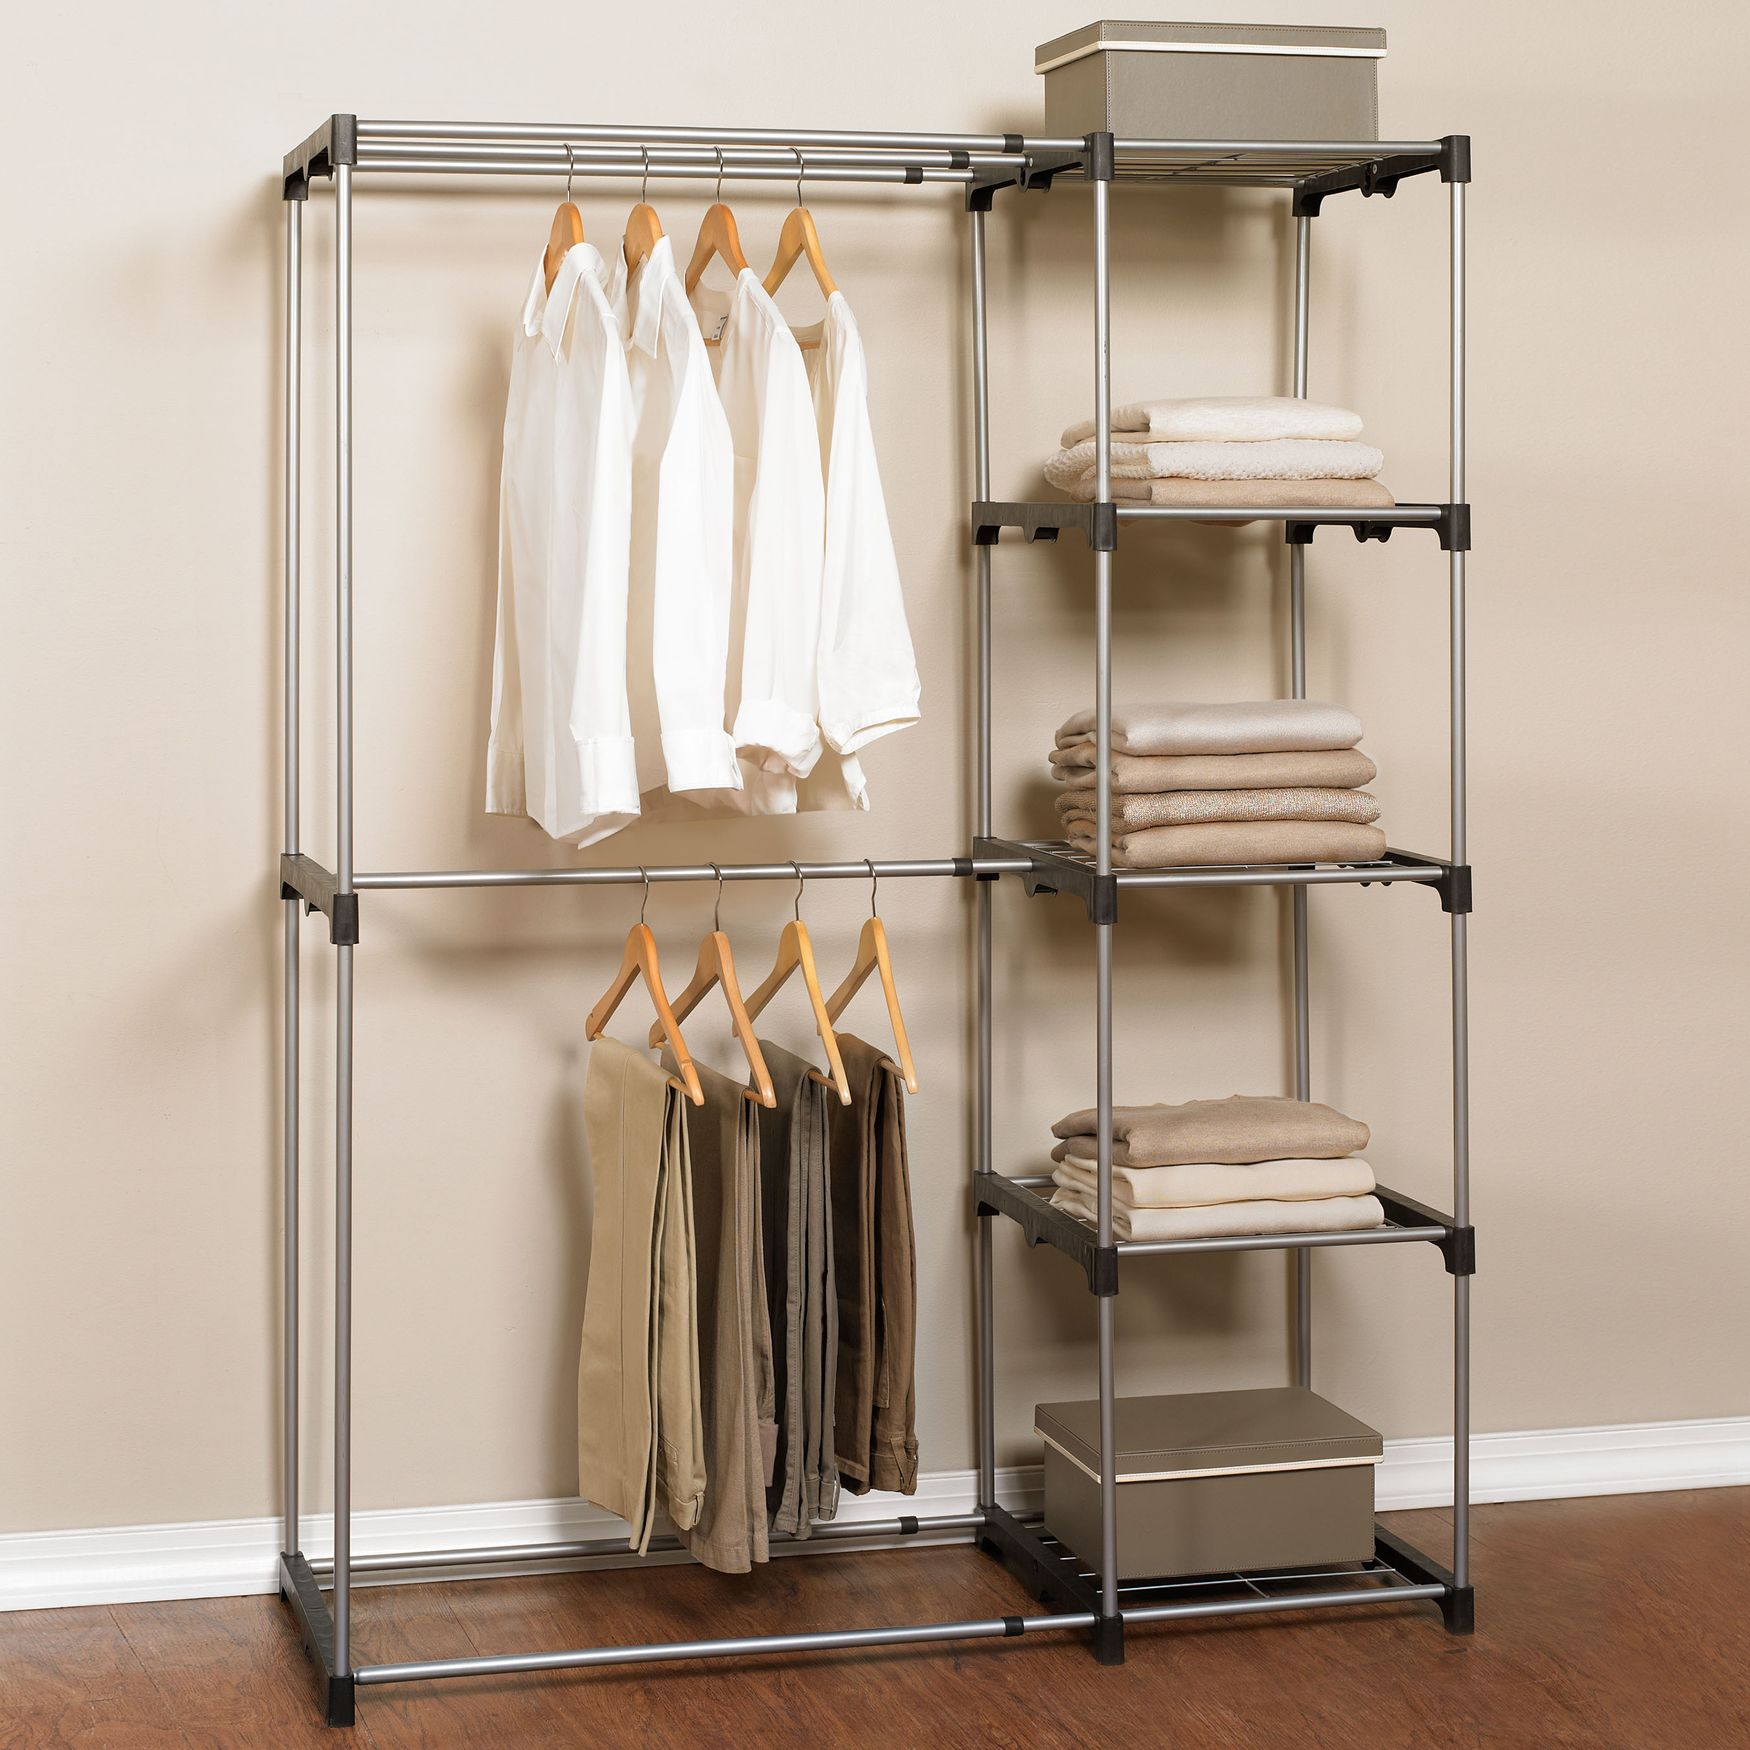 Hanging Rods Are Perfect For Hangers And Its Shelves Have